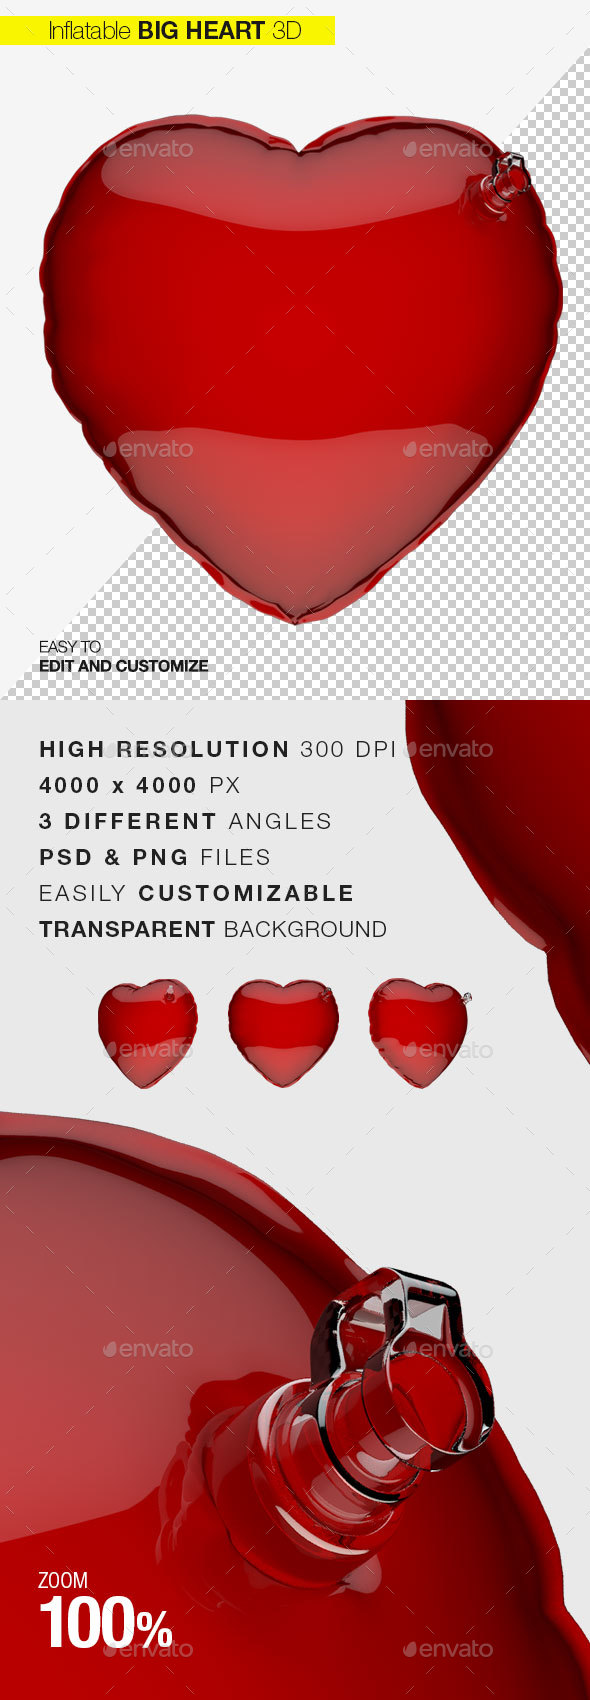 Heart Inflatable Love - Objects 3D Renders